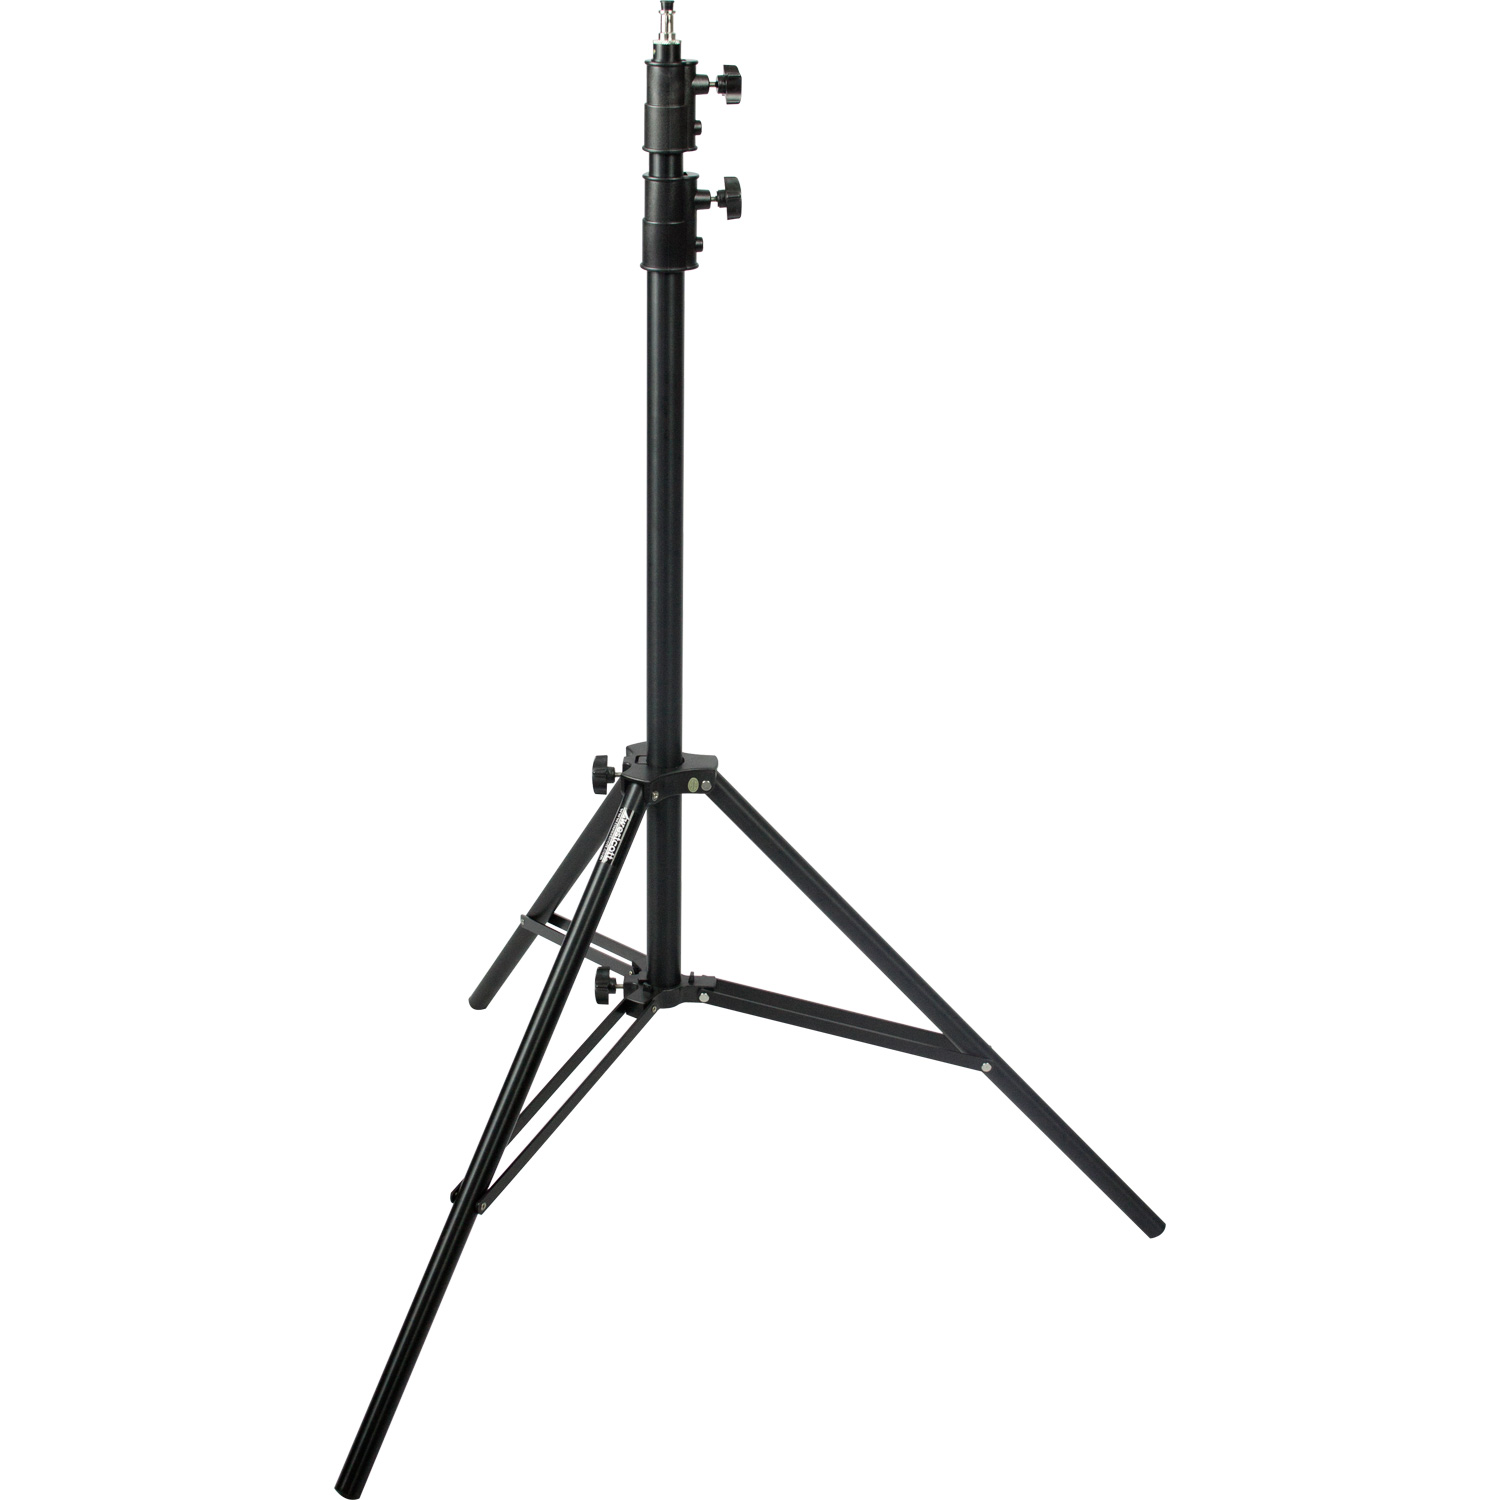 10' Heavy-Duty Light Stand